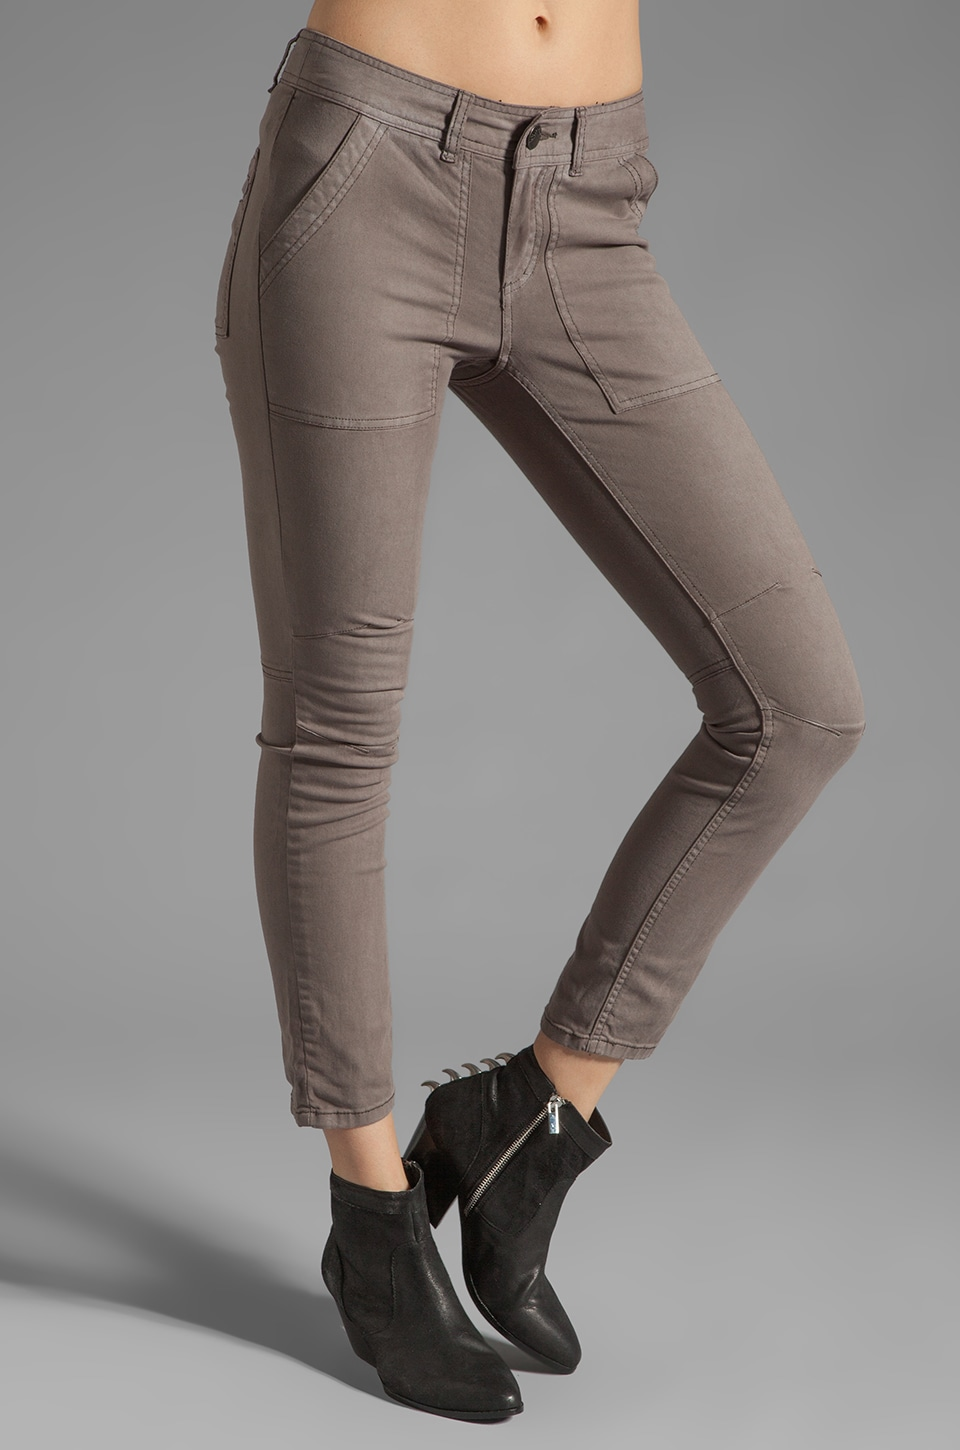 Free People Utility Pant in Olive